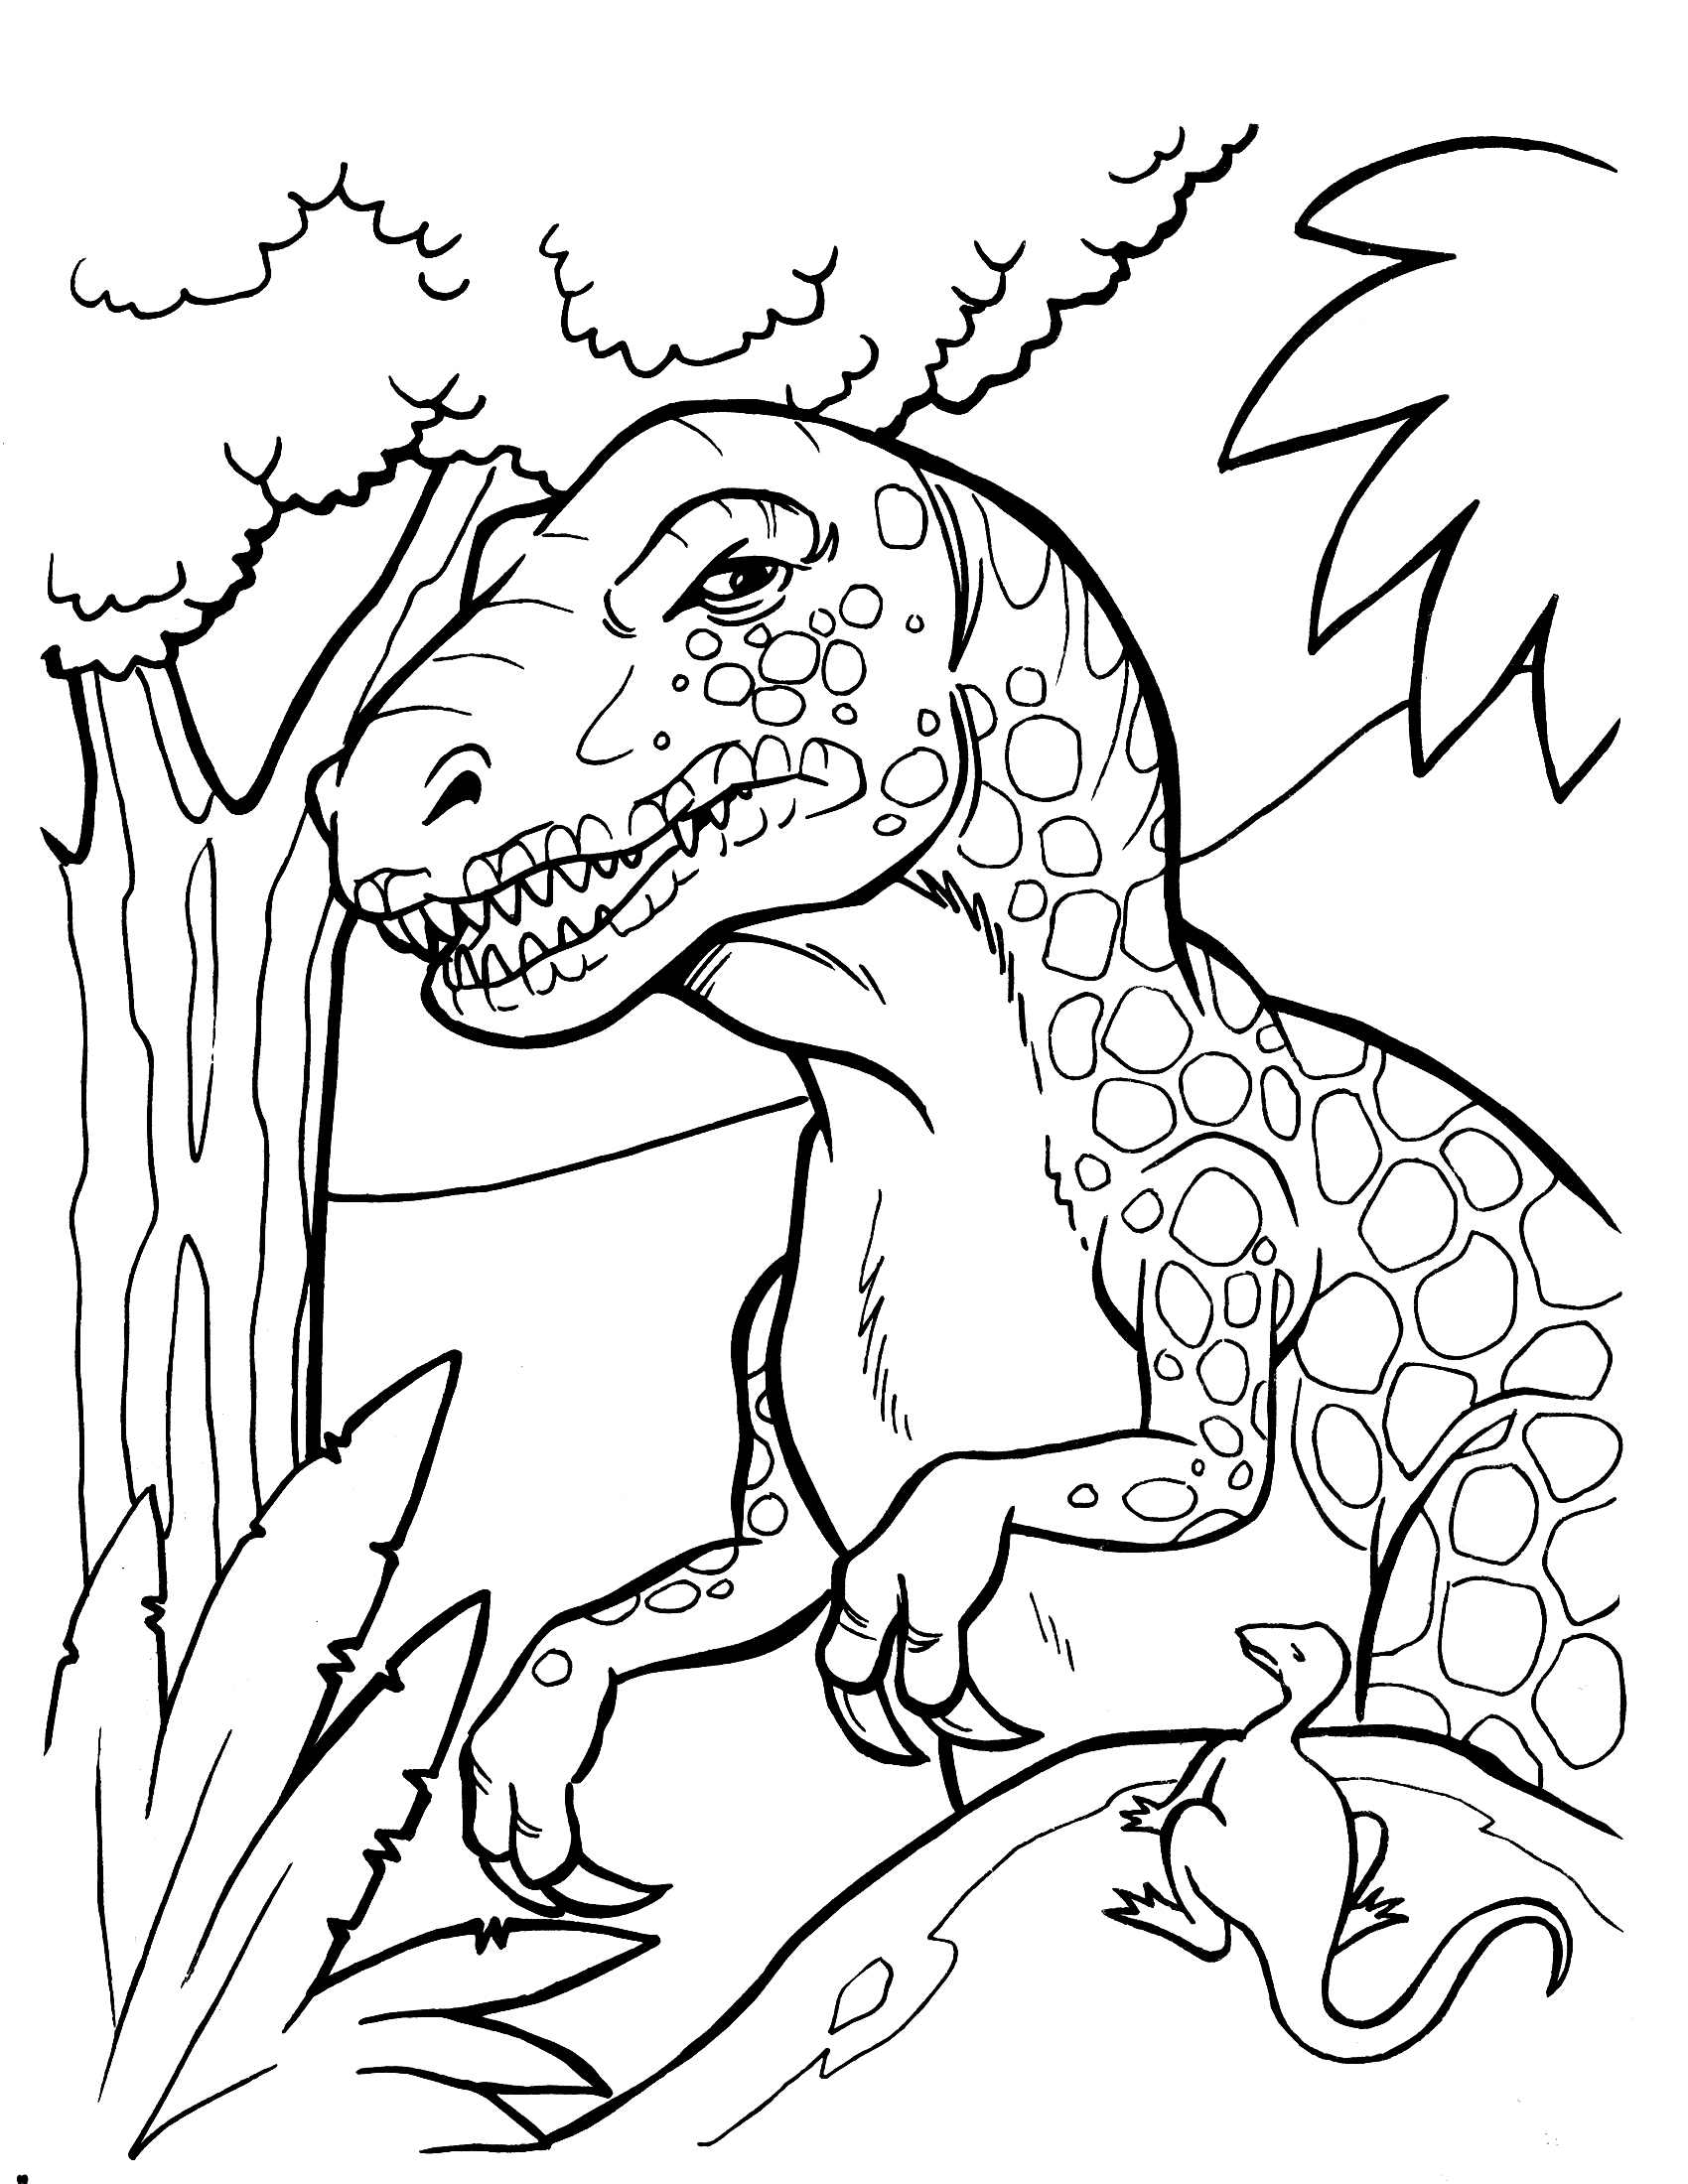 dino coloring page baby dinosaur coloring pages to download and print for free page dino coloring